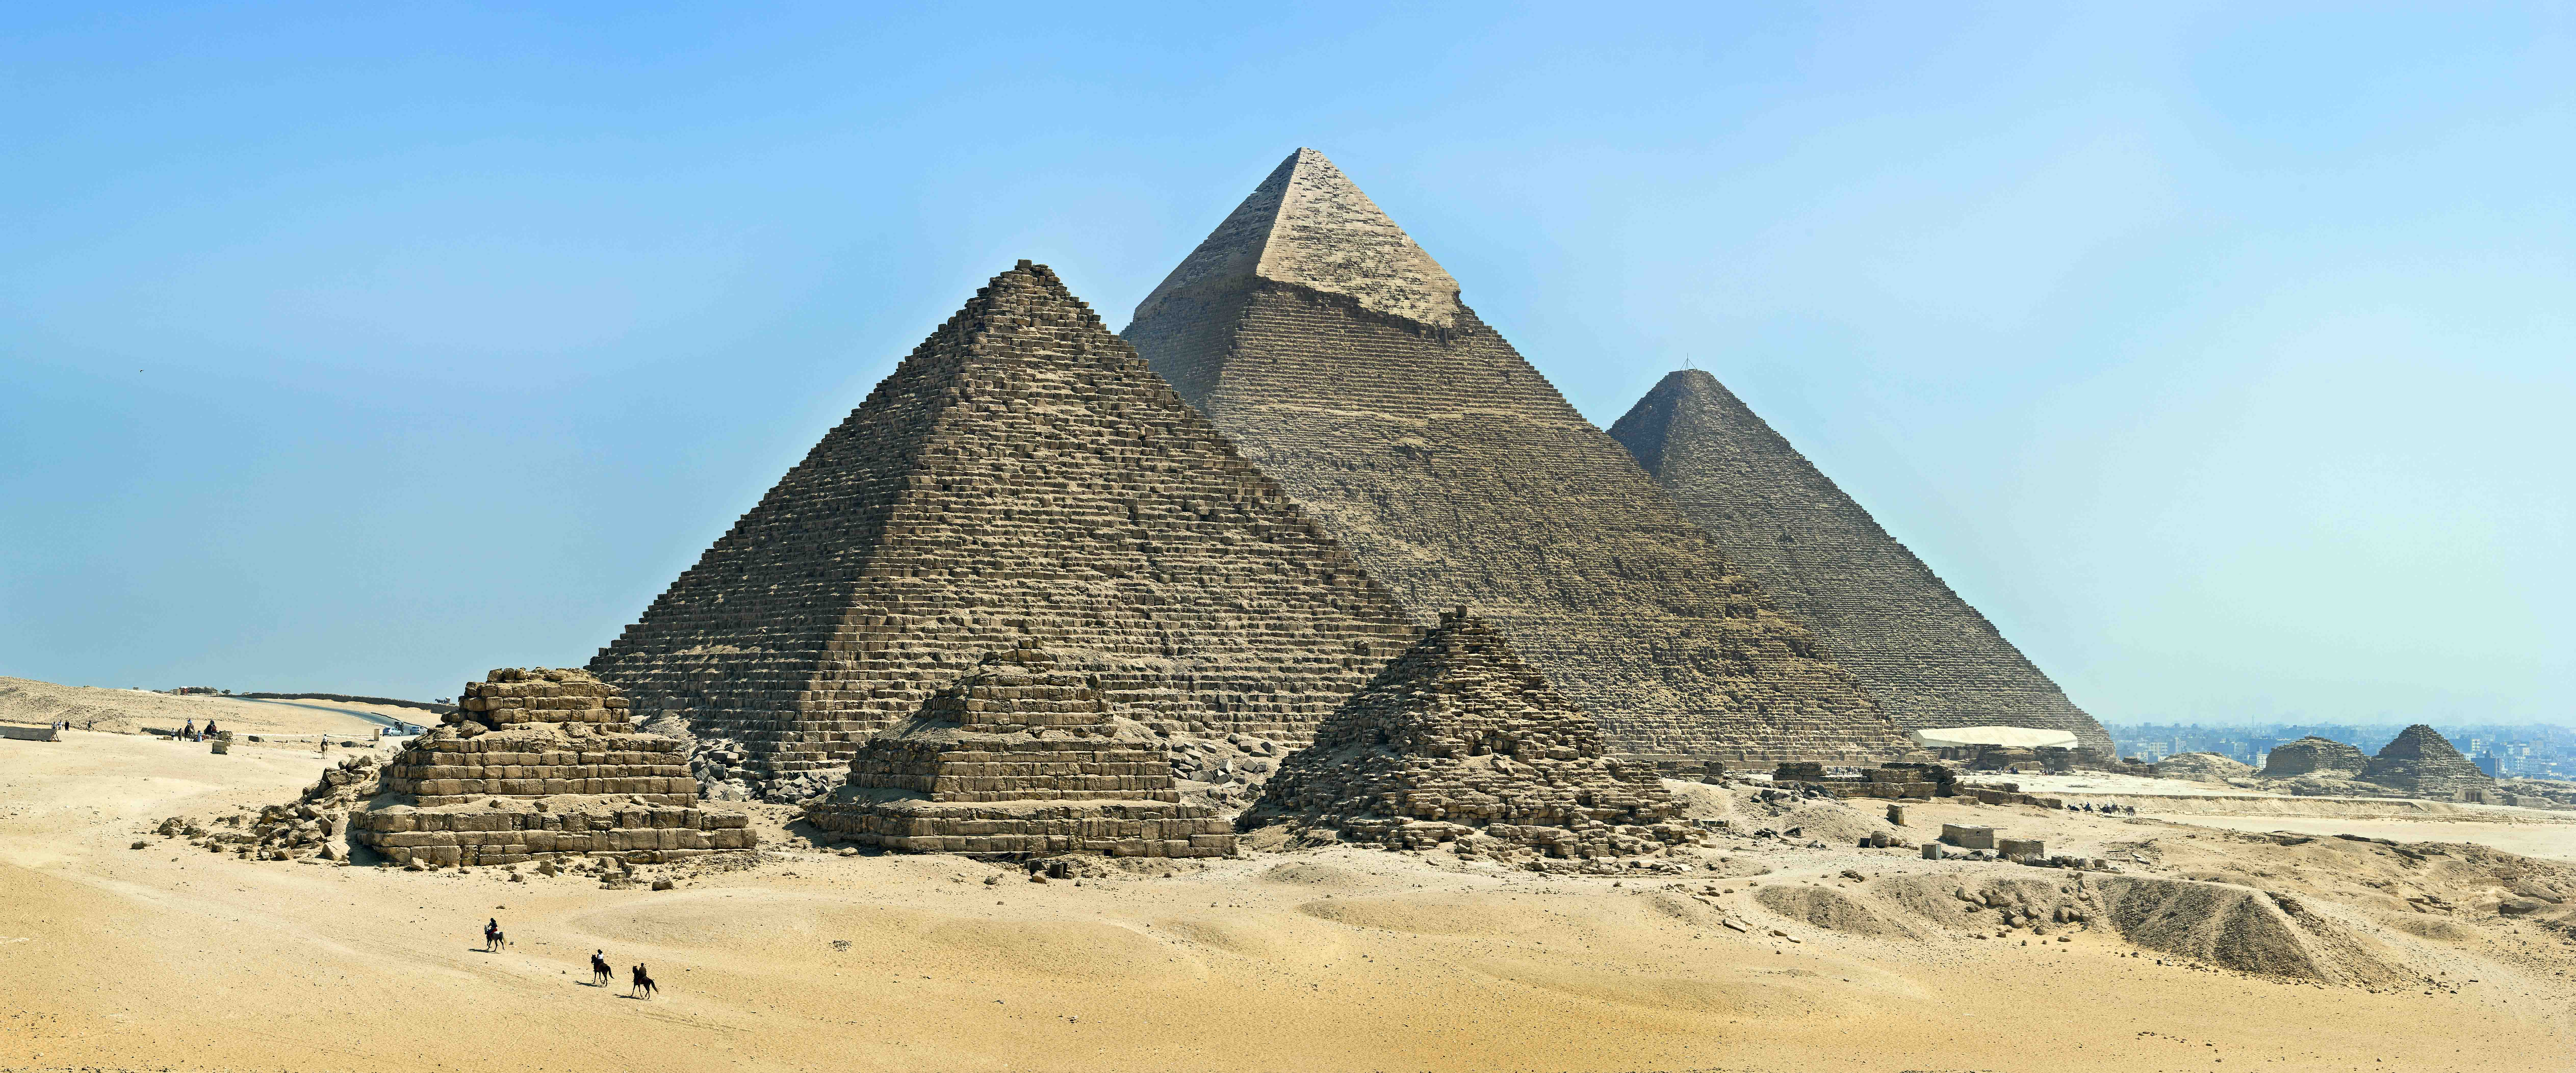 The Pyramids at Giza, Egypt (photo: KennyOMG, CC BY-SA 4.0)